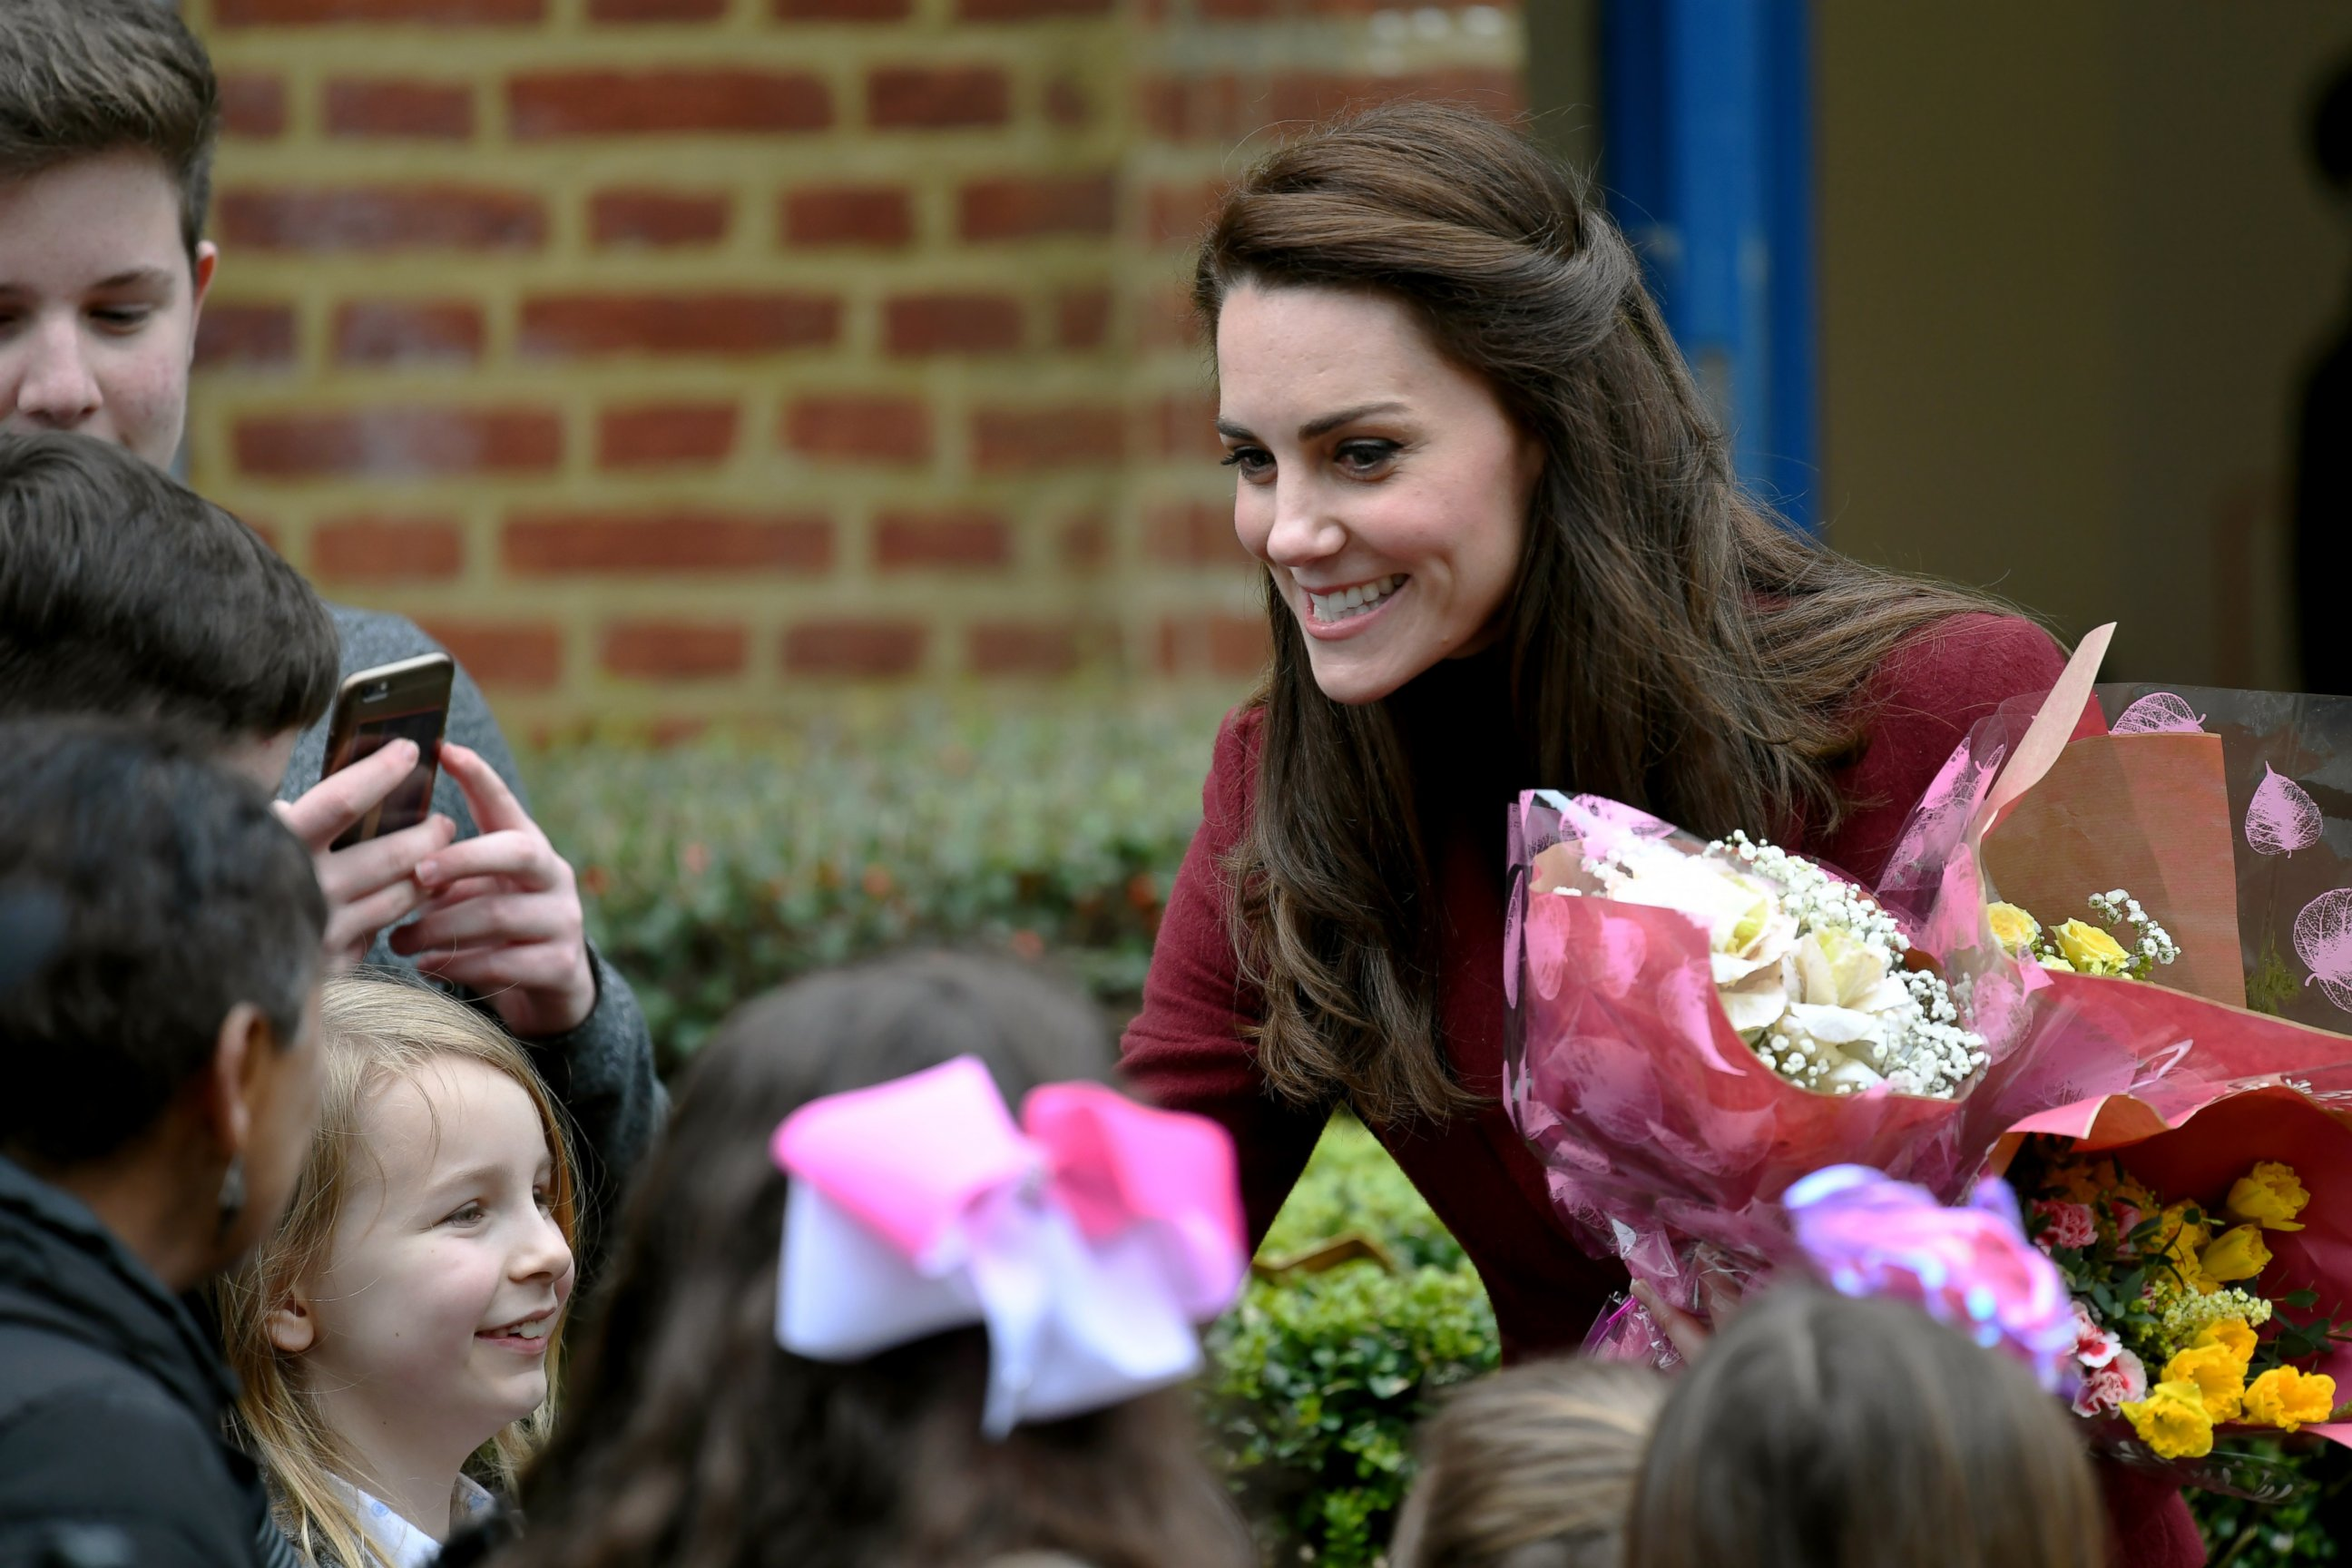 Duchess Kate met with children at her new charity